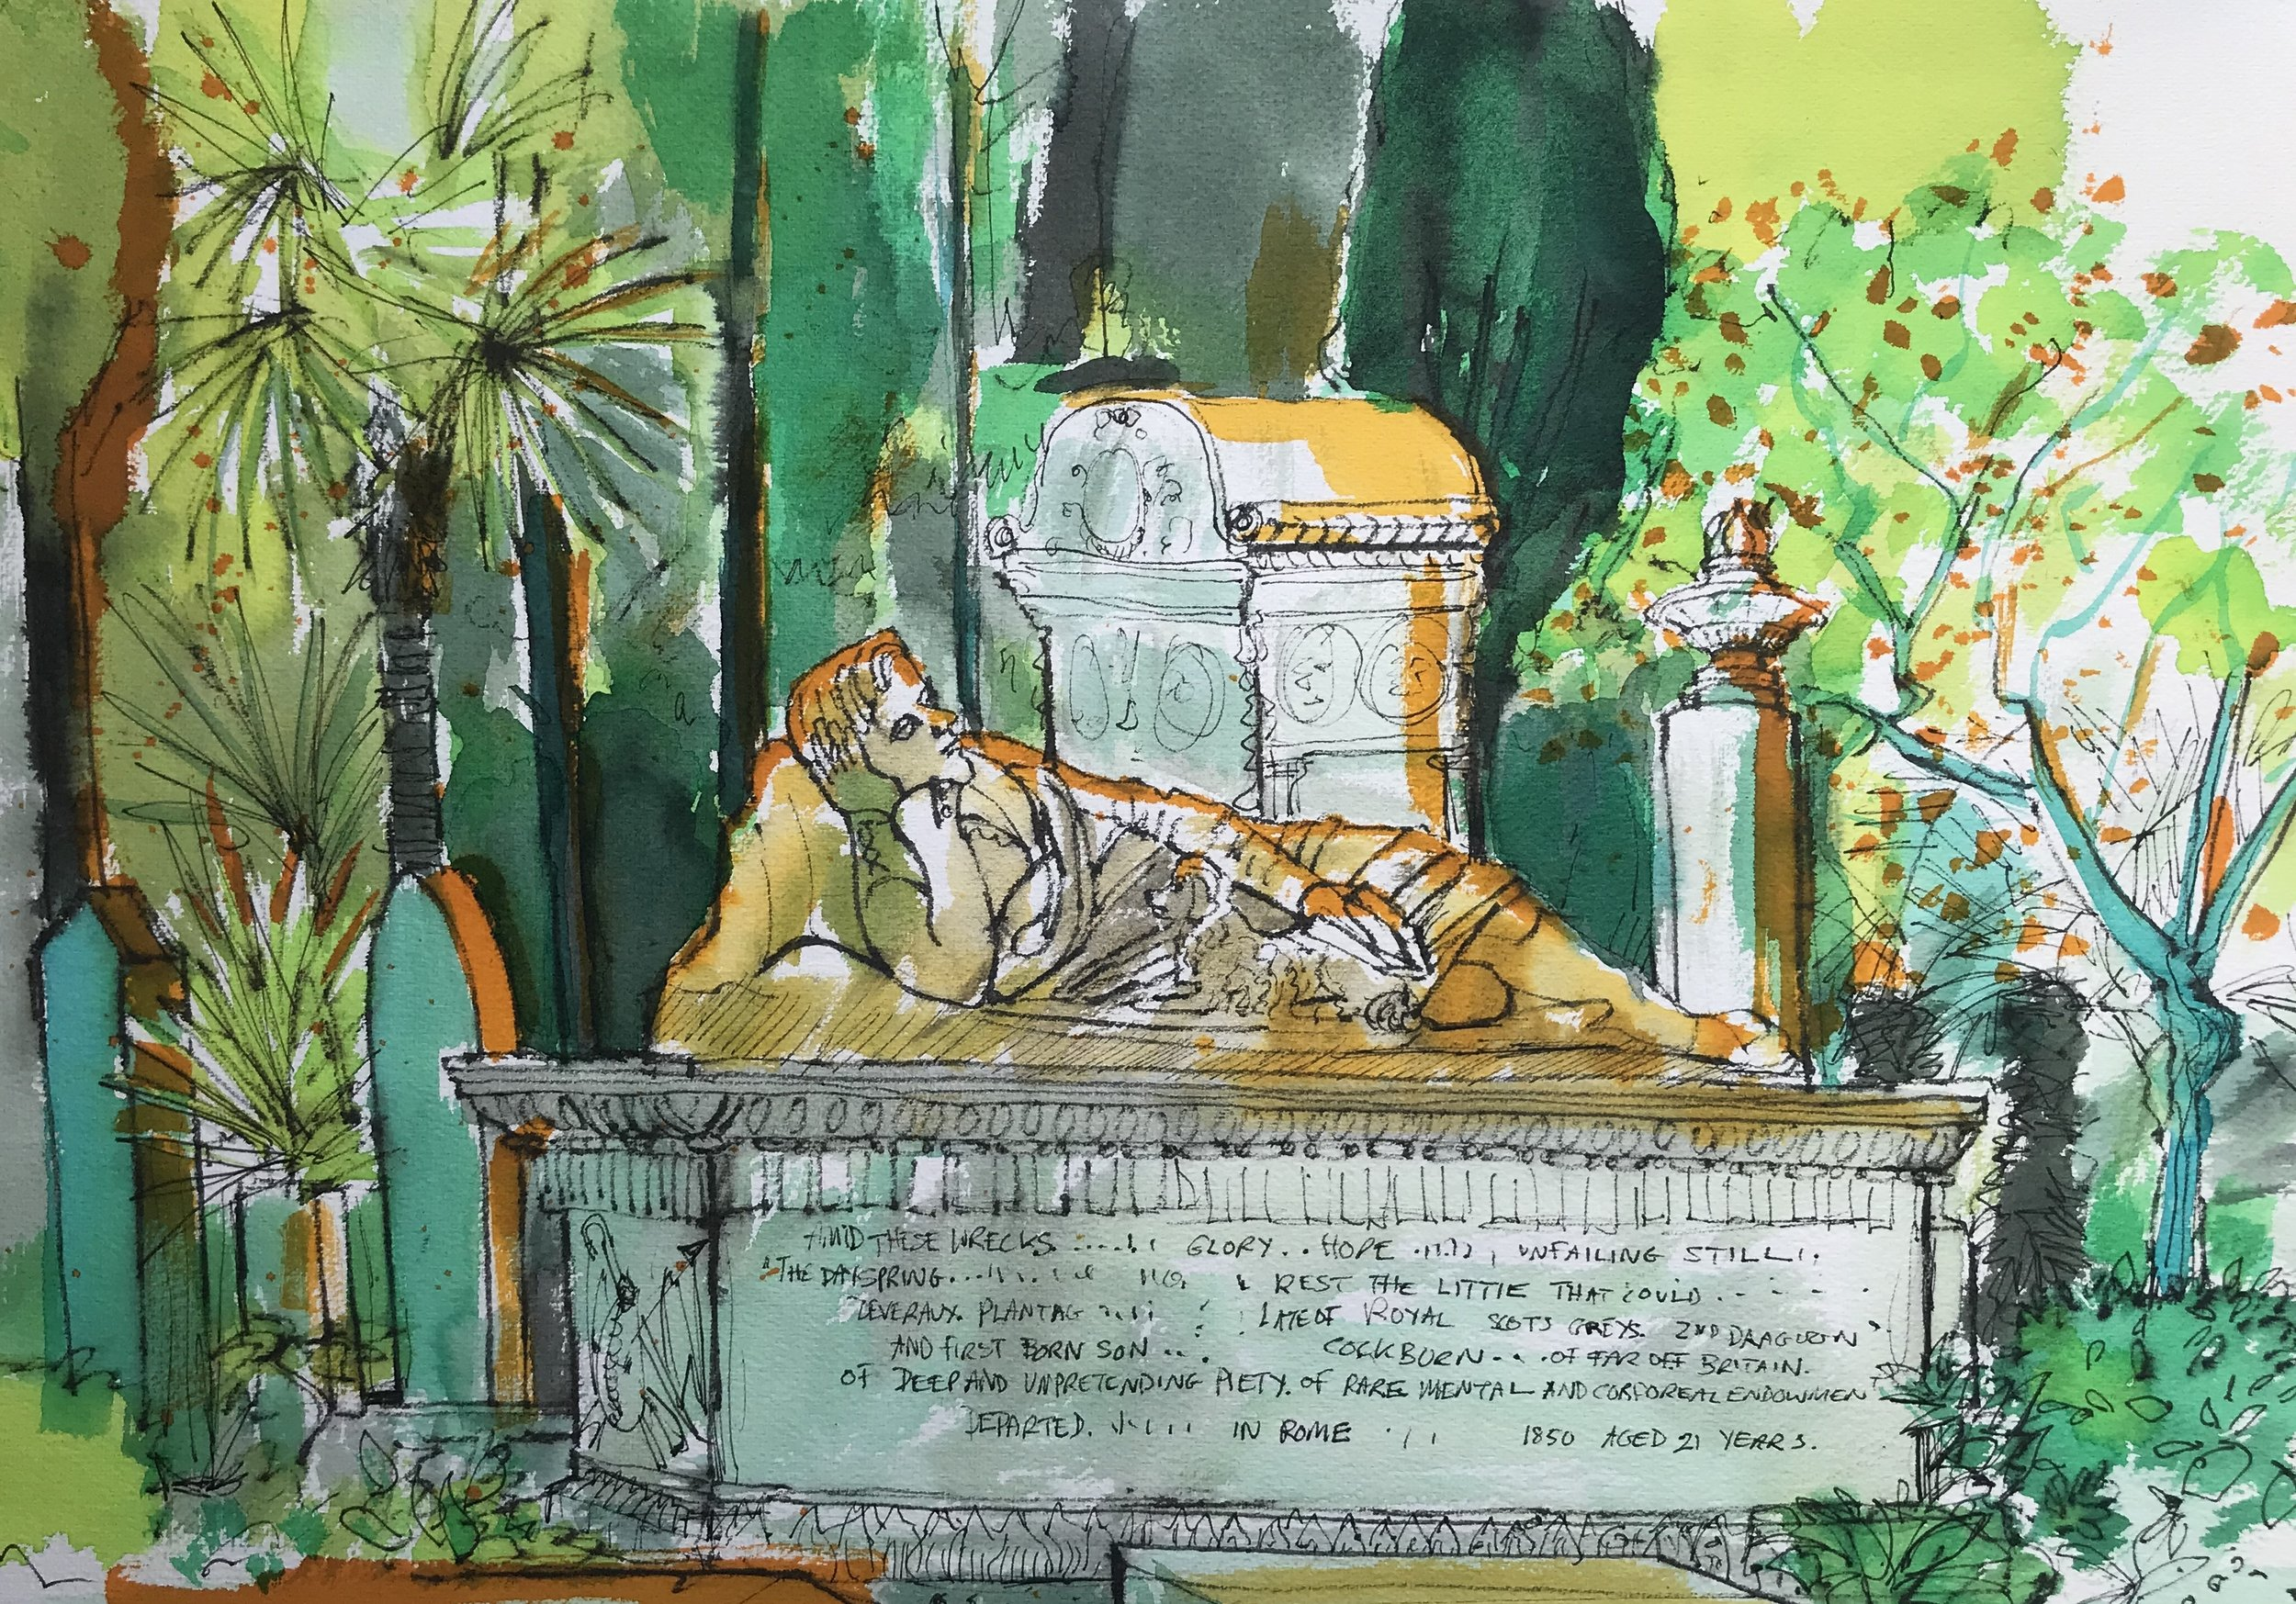 Resting Man Non Catholic Cemetery of Rome (pen and ink plus coloured inks) £60 framed